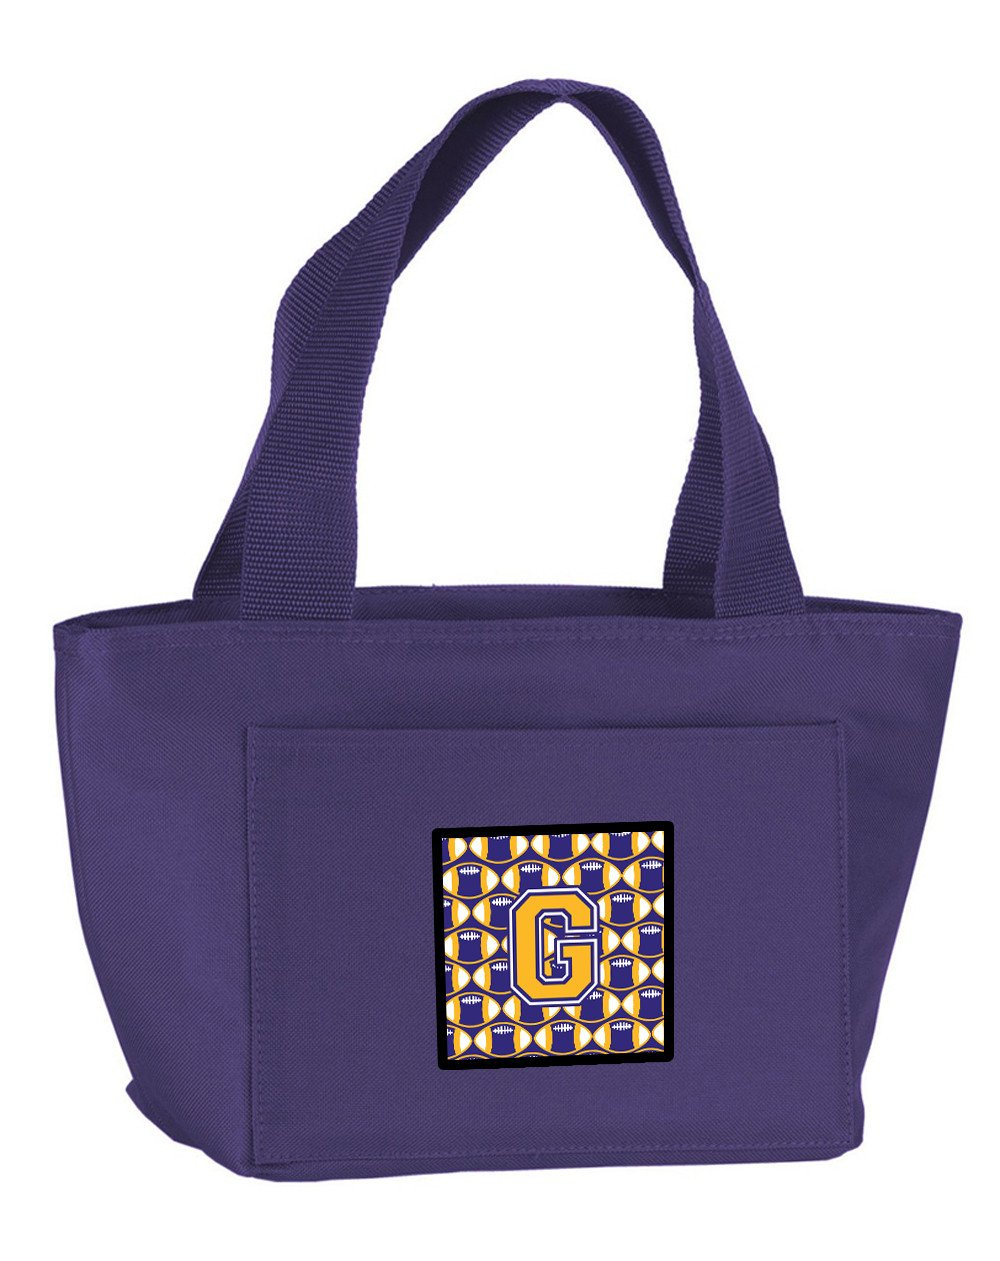 Letter G Football Purple and Gold Lunch Bag CJ1064-GPR-8808 by Caroline's Treasures